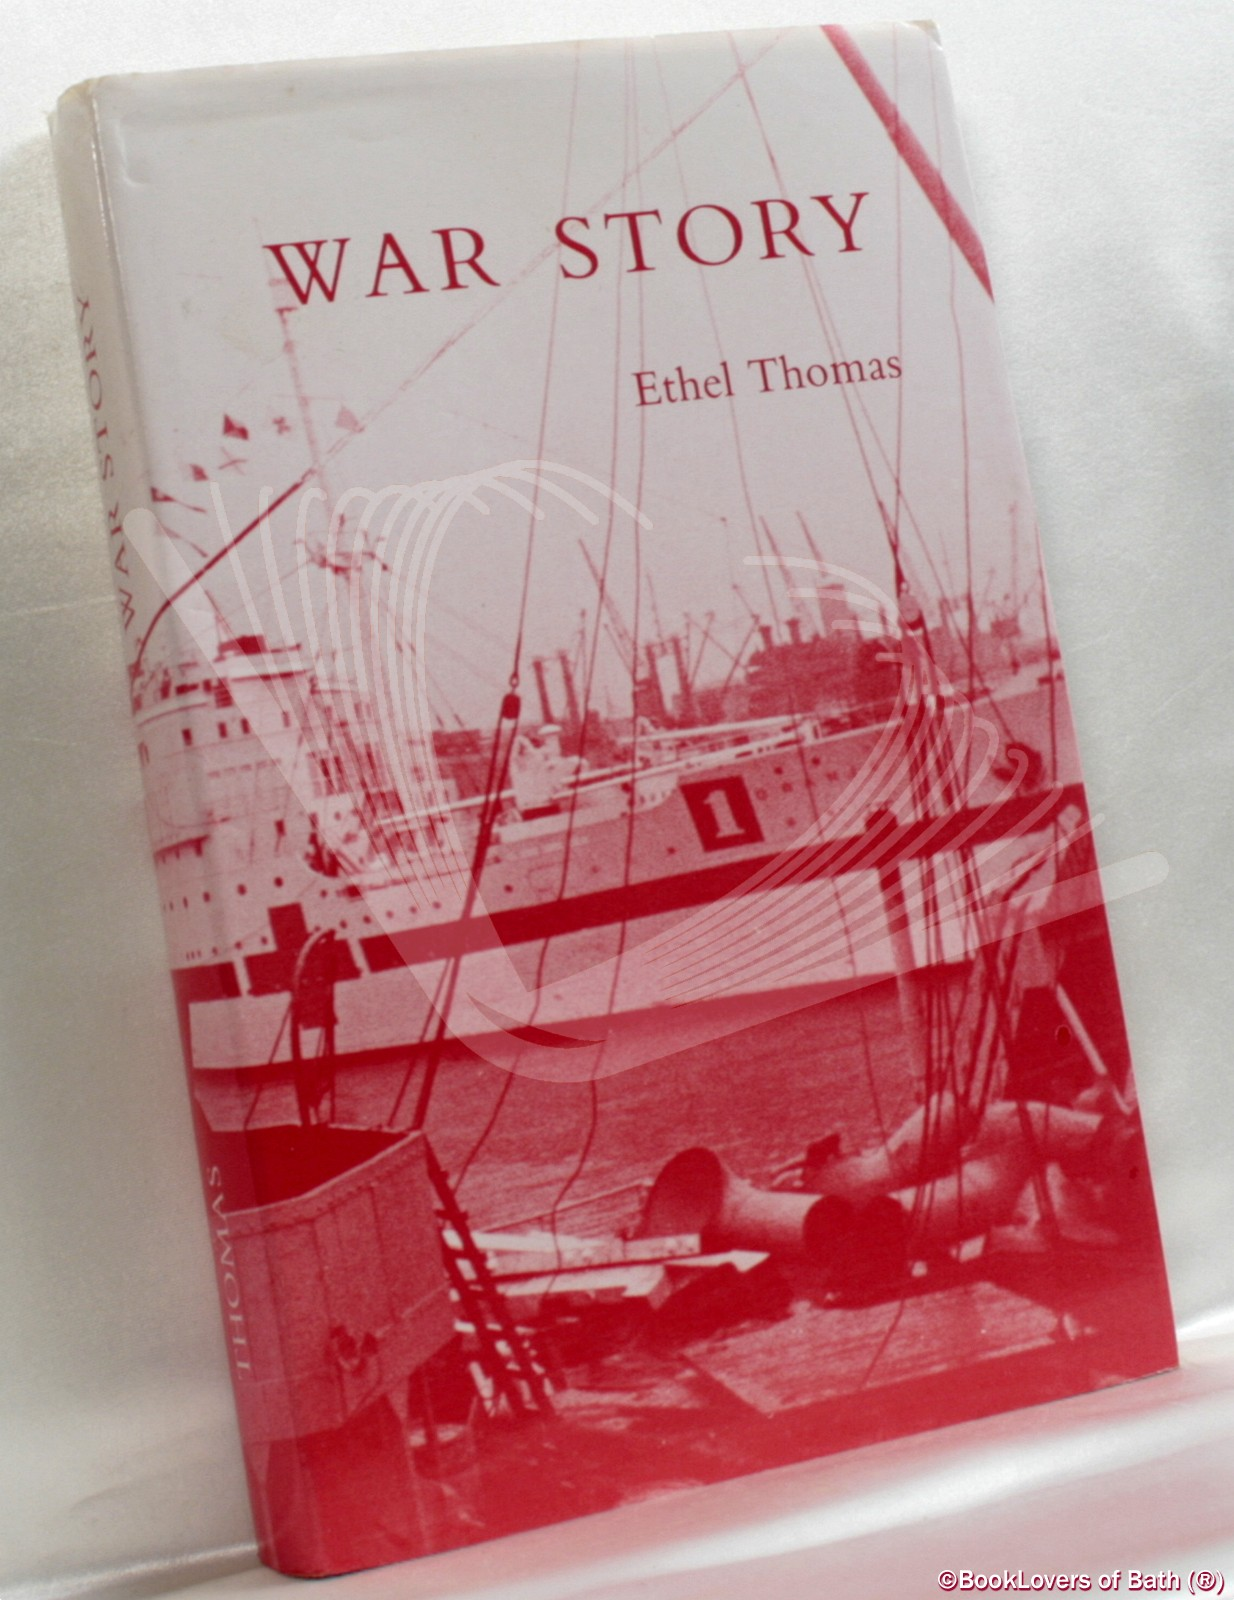 War Story - Ethel Thomas